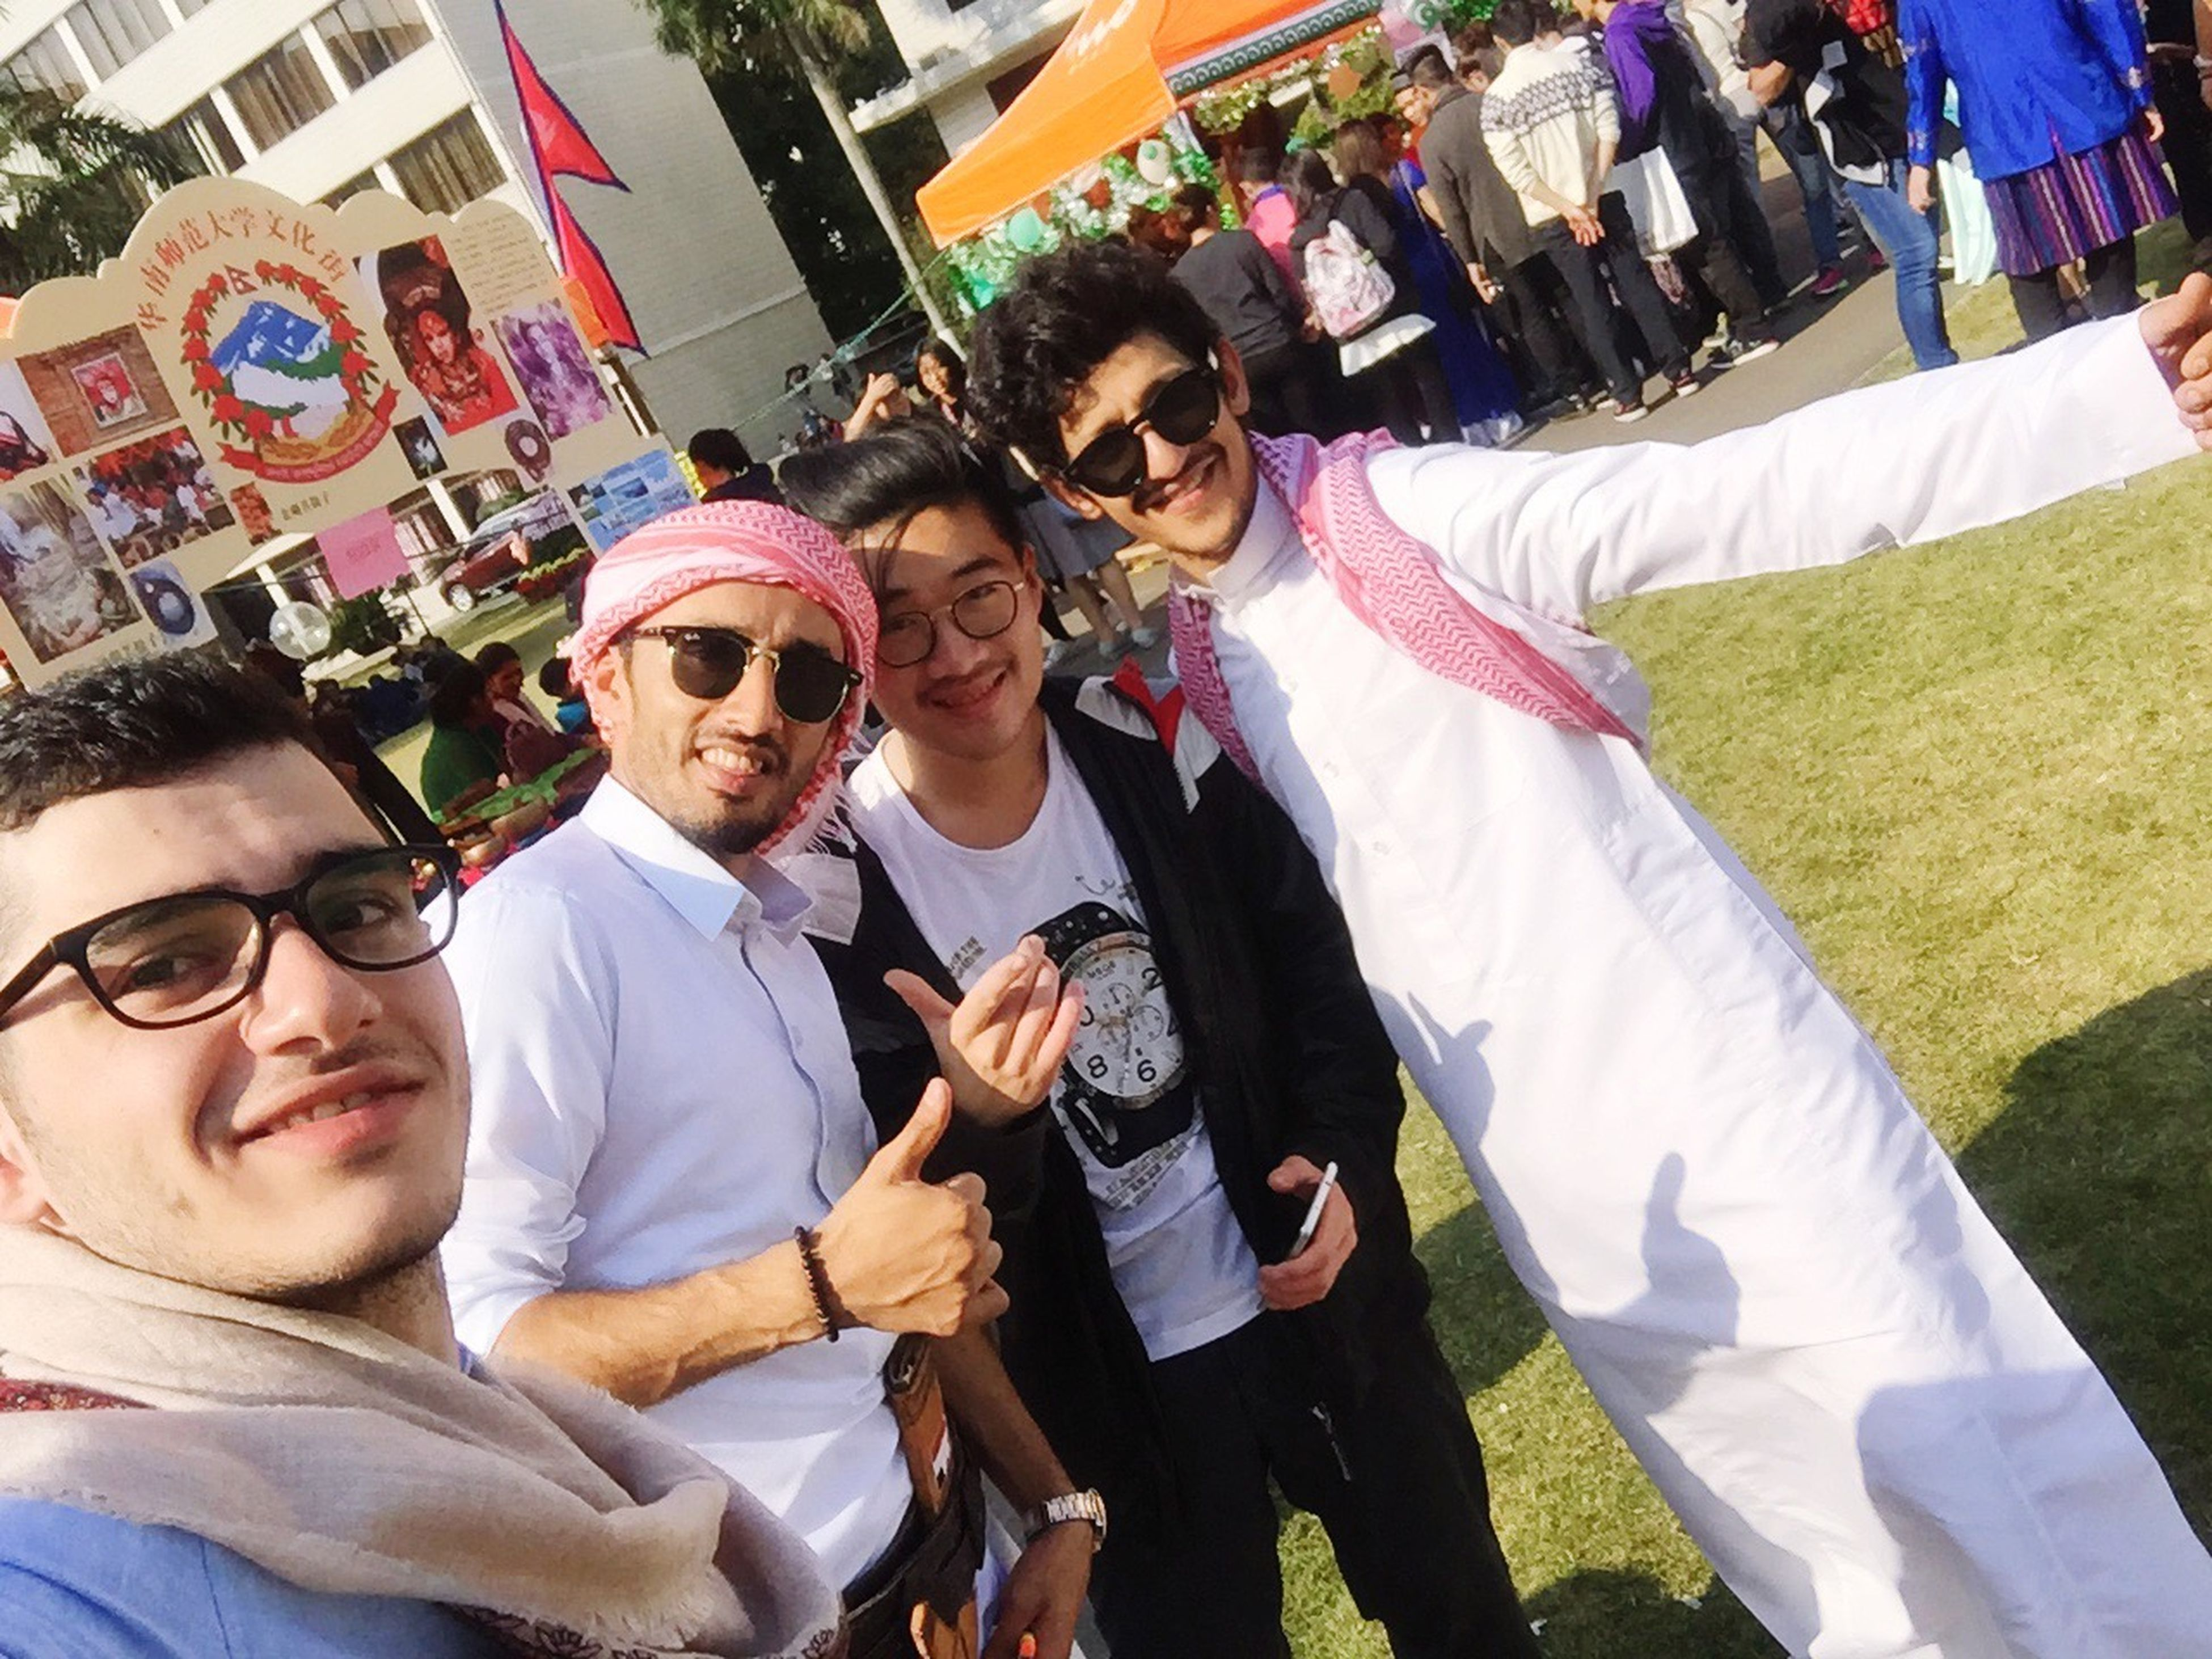 togetherness, smiling, happiness, men, sunglasses, fun, cheerful, multi colored, people, adult, adults only, young adult, outdoors, market, day, only men